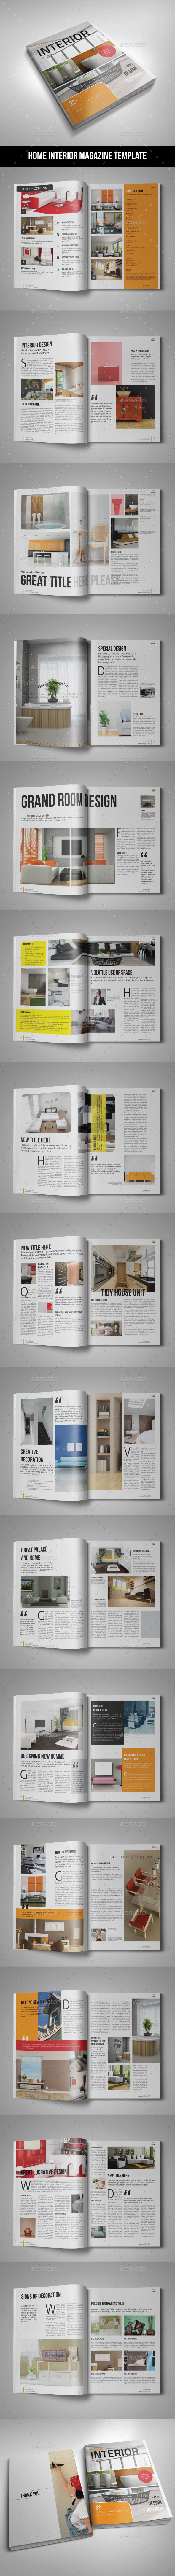 42 Pages Homme Interior Magazine Template